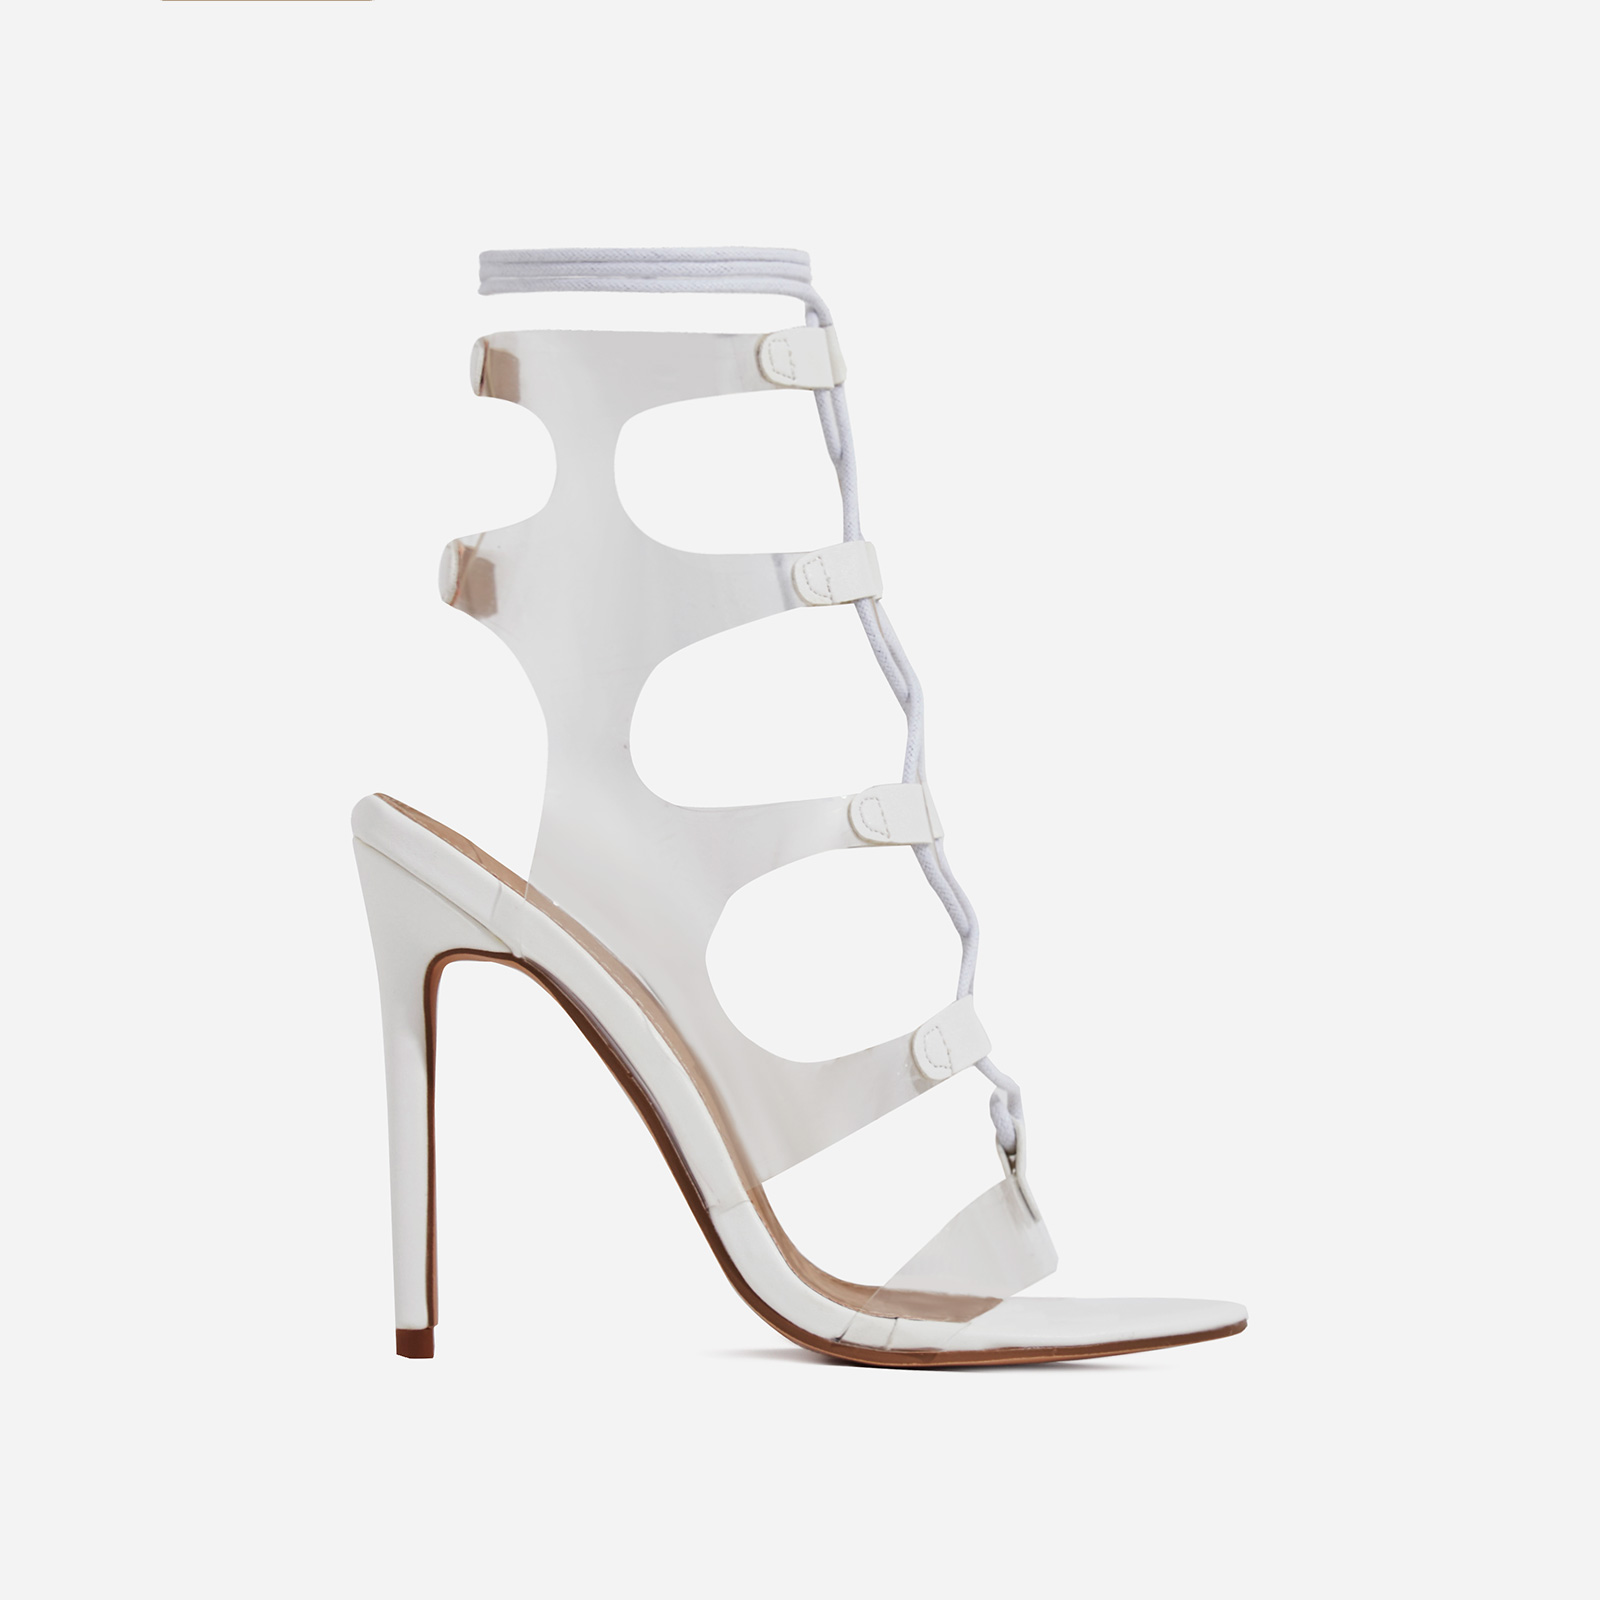 Solstice Lace Up Perspex Heel In White Faux Leather